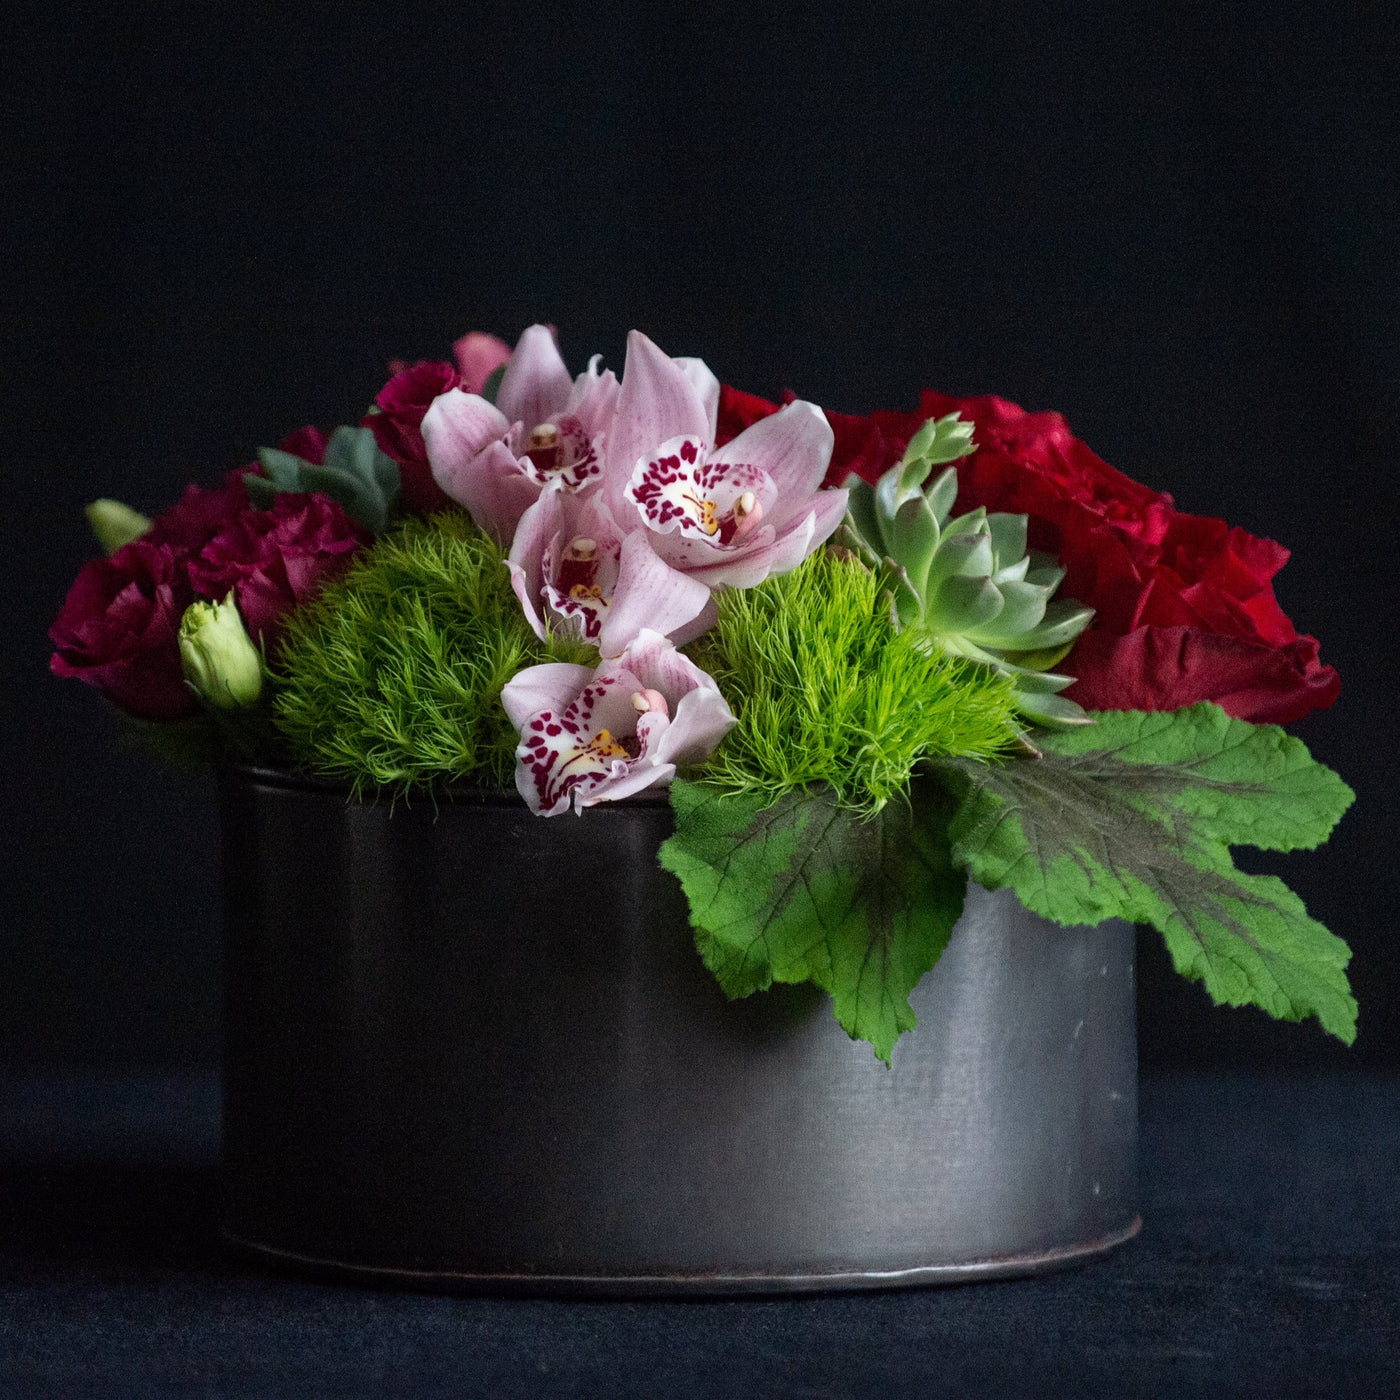 Low, lush design of red and pink flowers with succulents in a black container